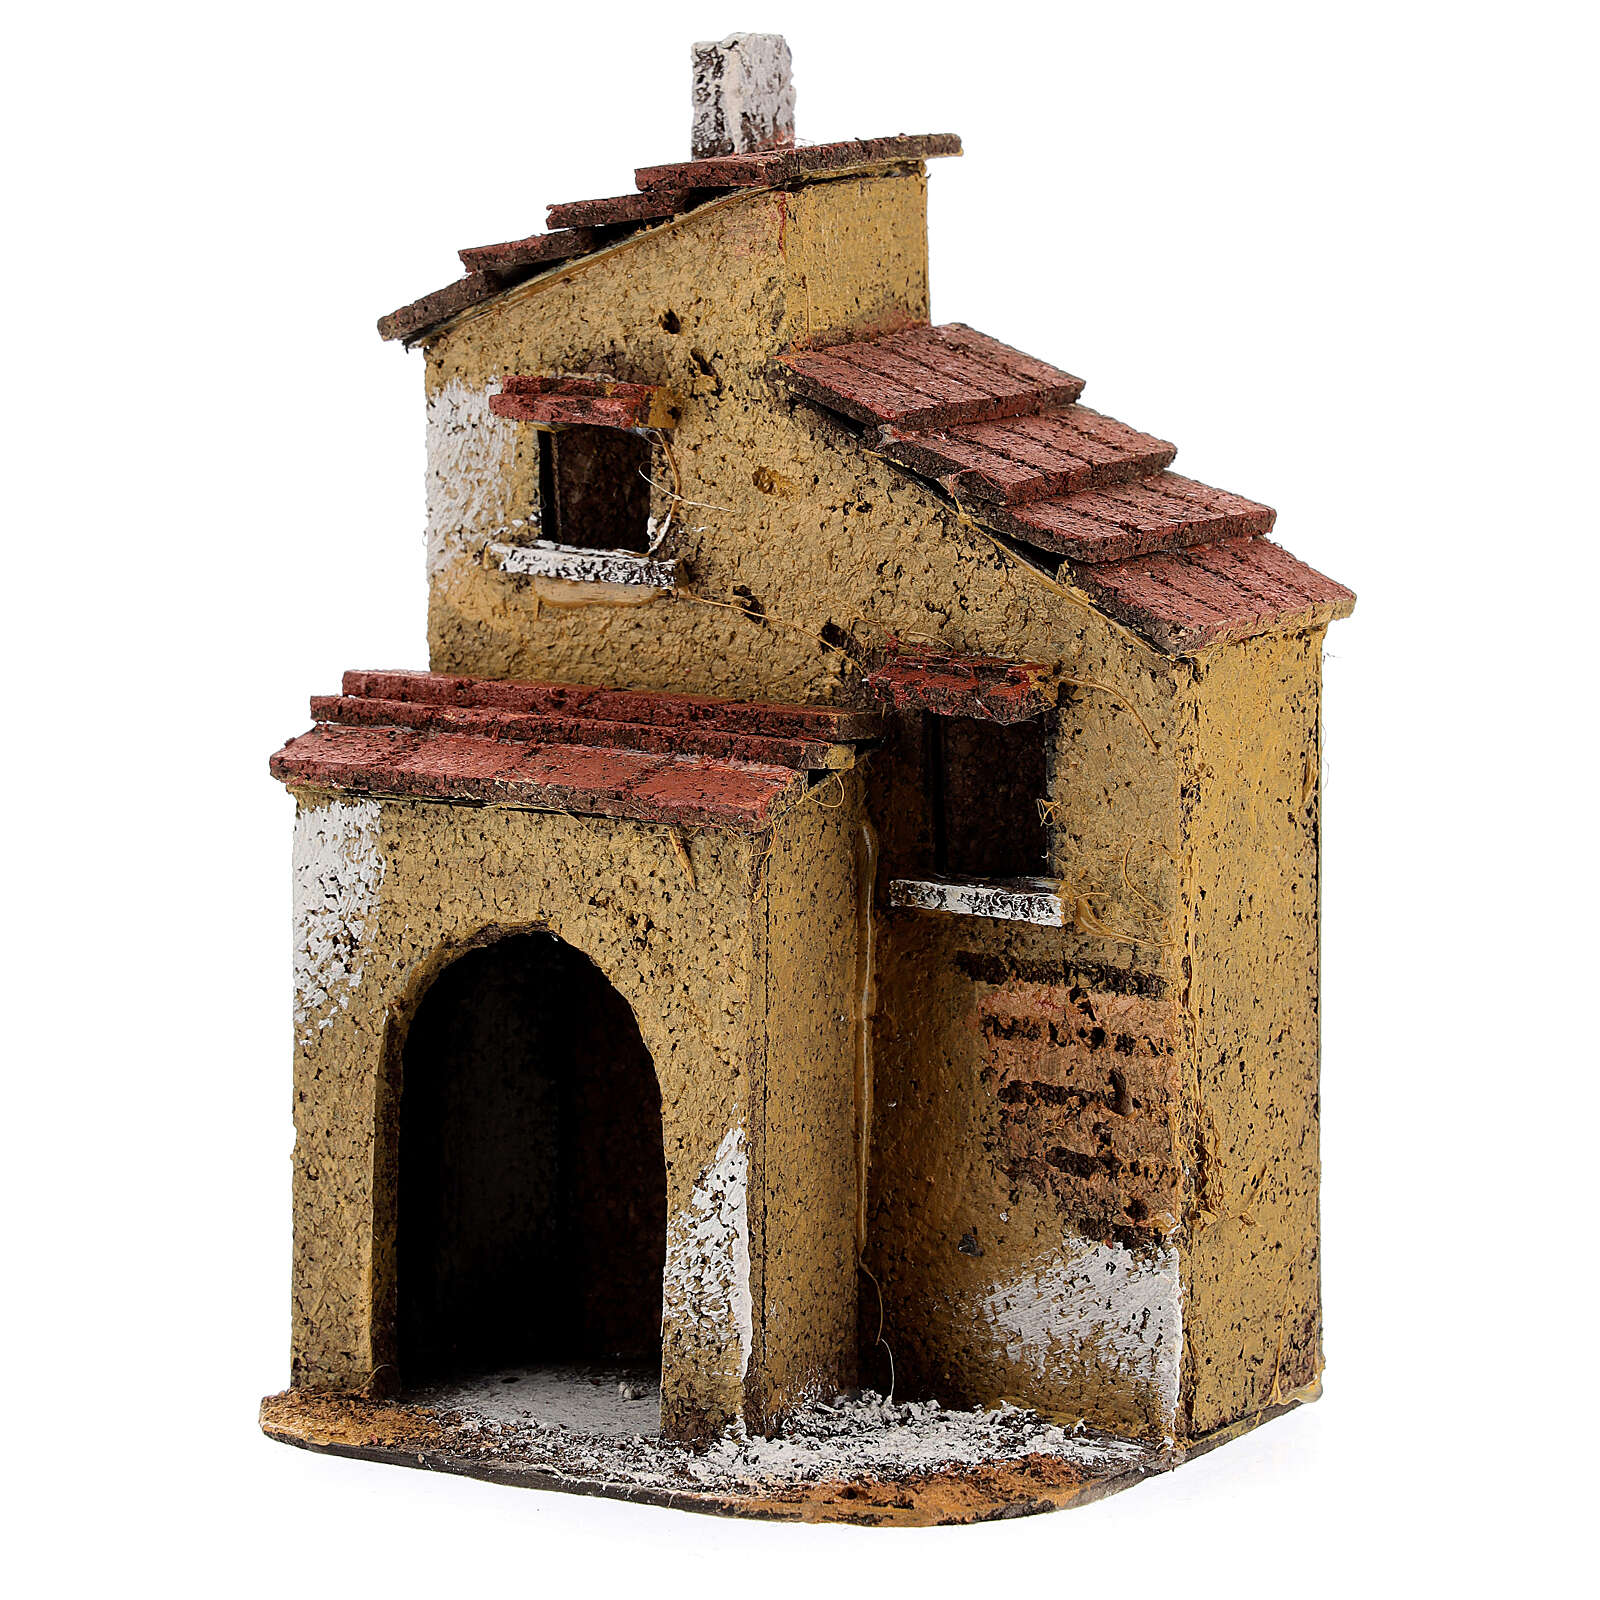 Cork ochre little house for Nativity Scene with 4 cm figurines 15x10x10 cm 4